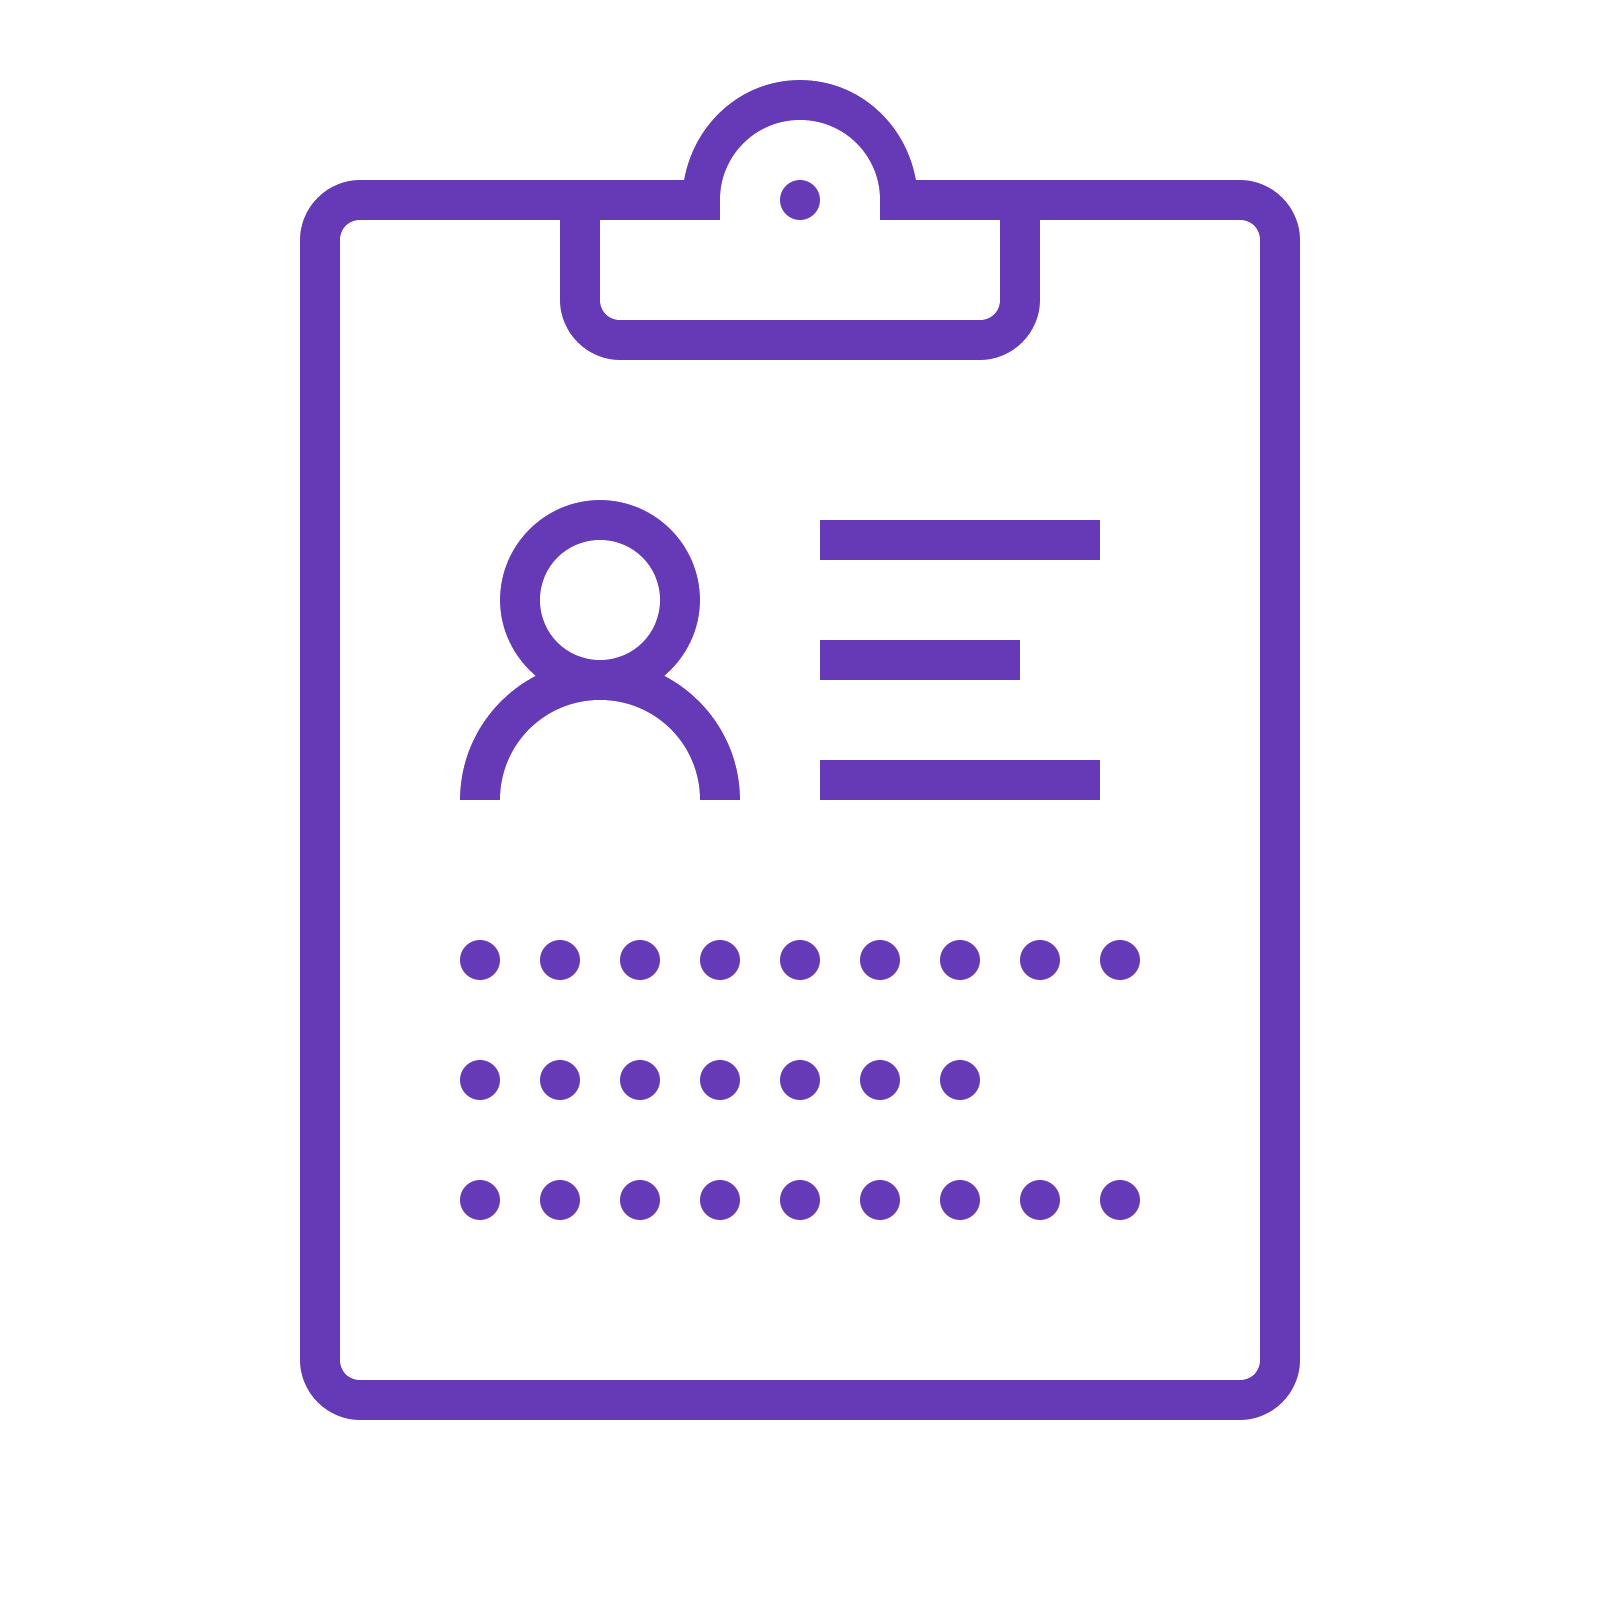 Computer icons editing clip. Clipboard clipart purple